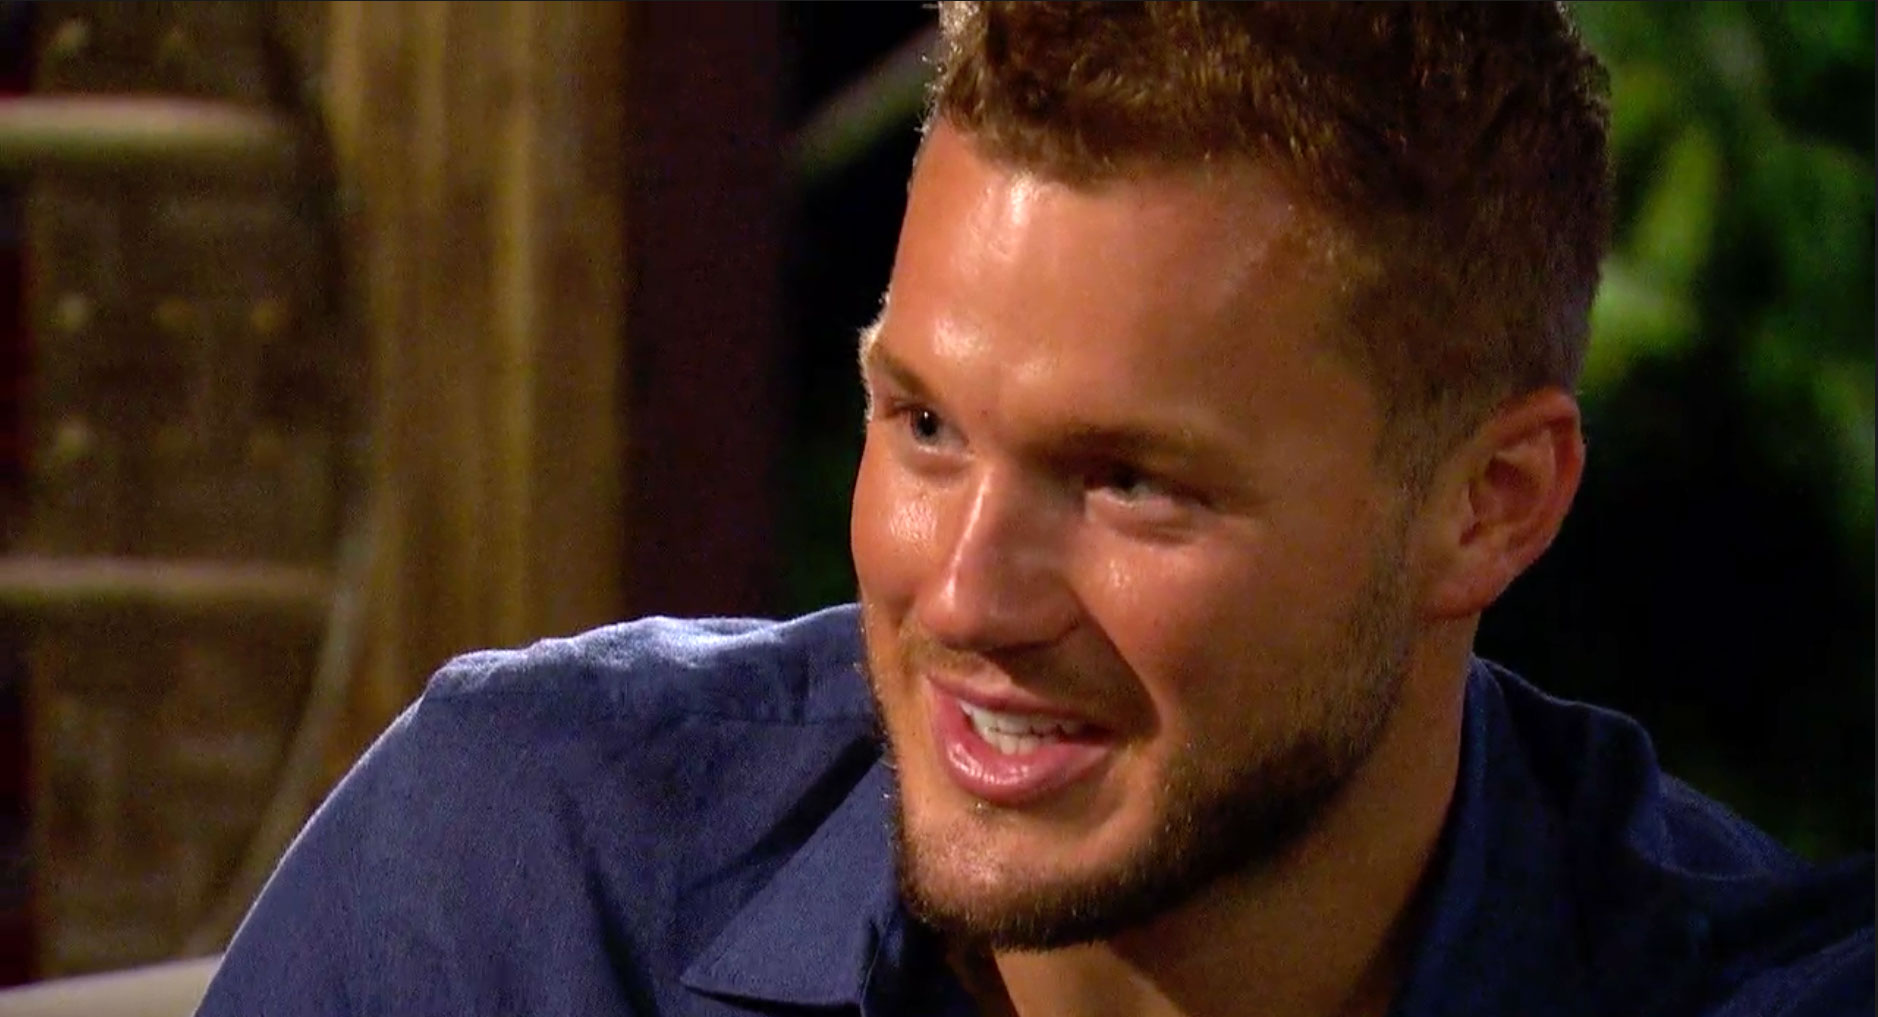 Colton Underwood Bachelor 23x06 Recap - Colton Underwood during episode 6 of ABC's 'The Bachelor'.